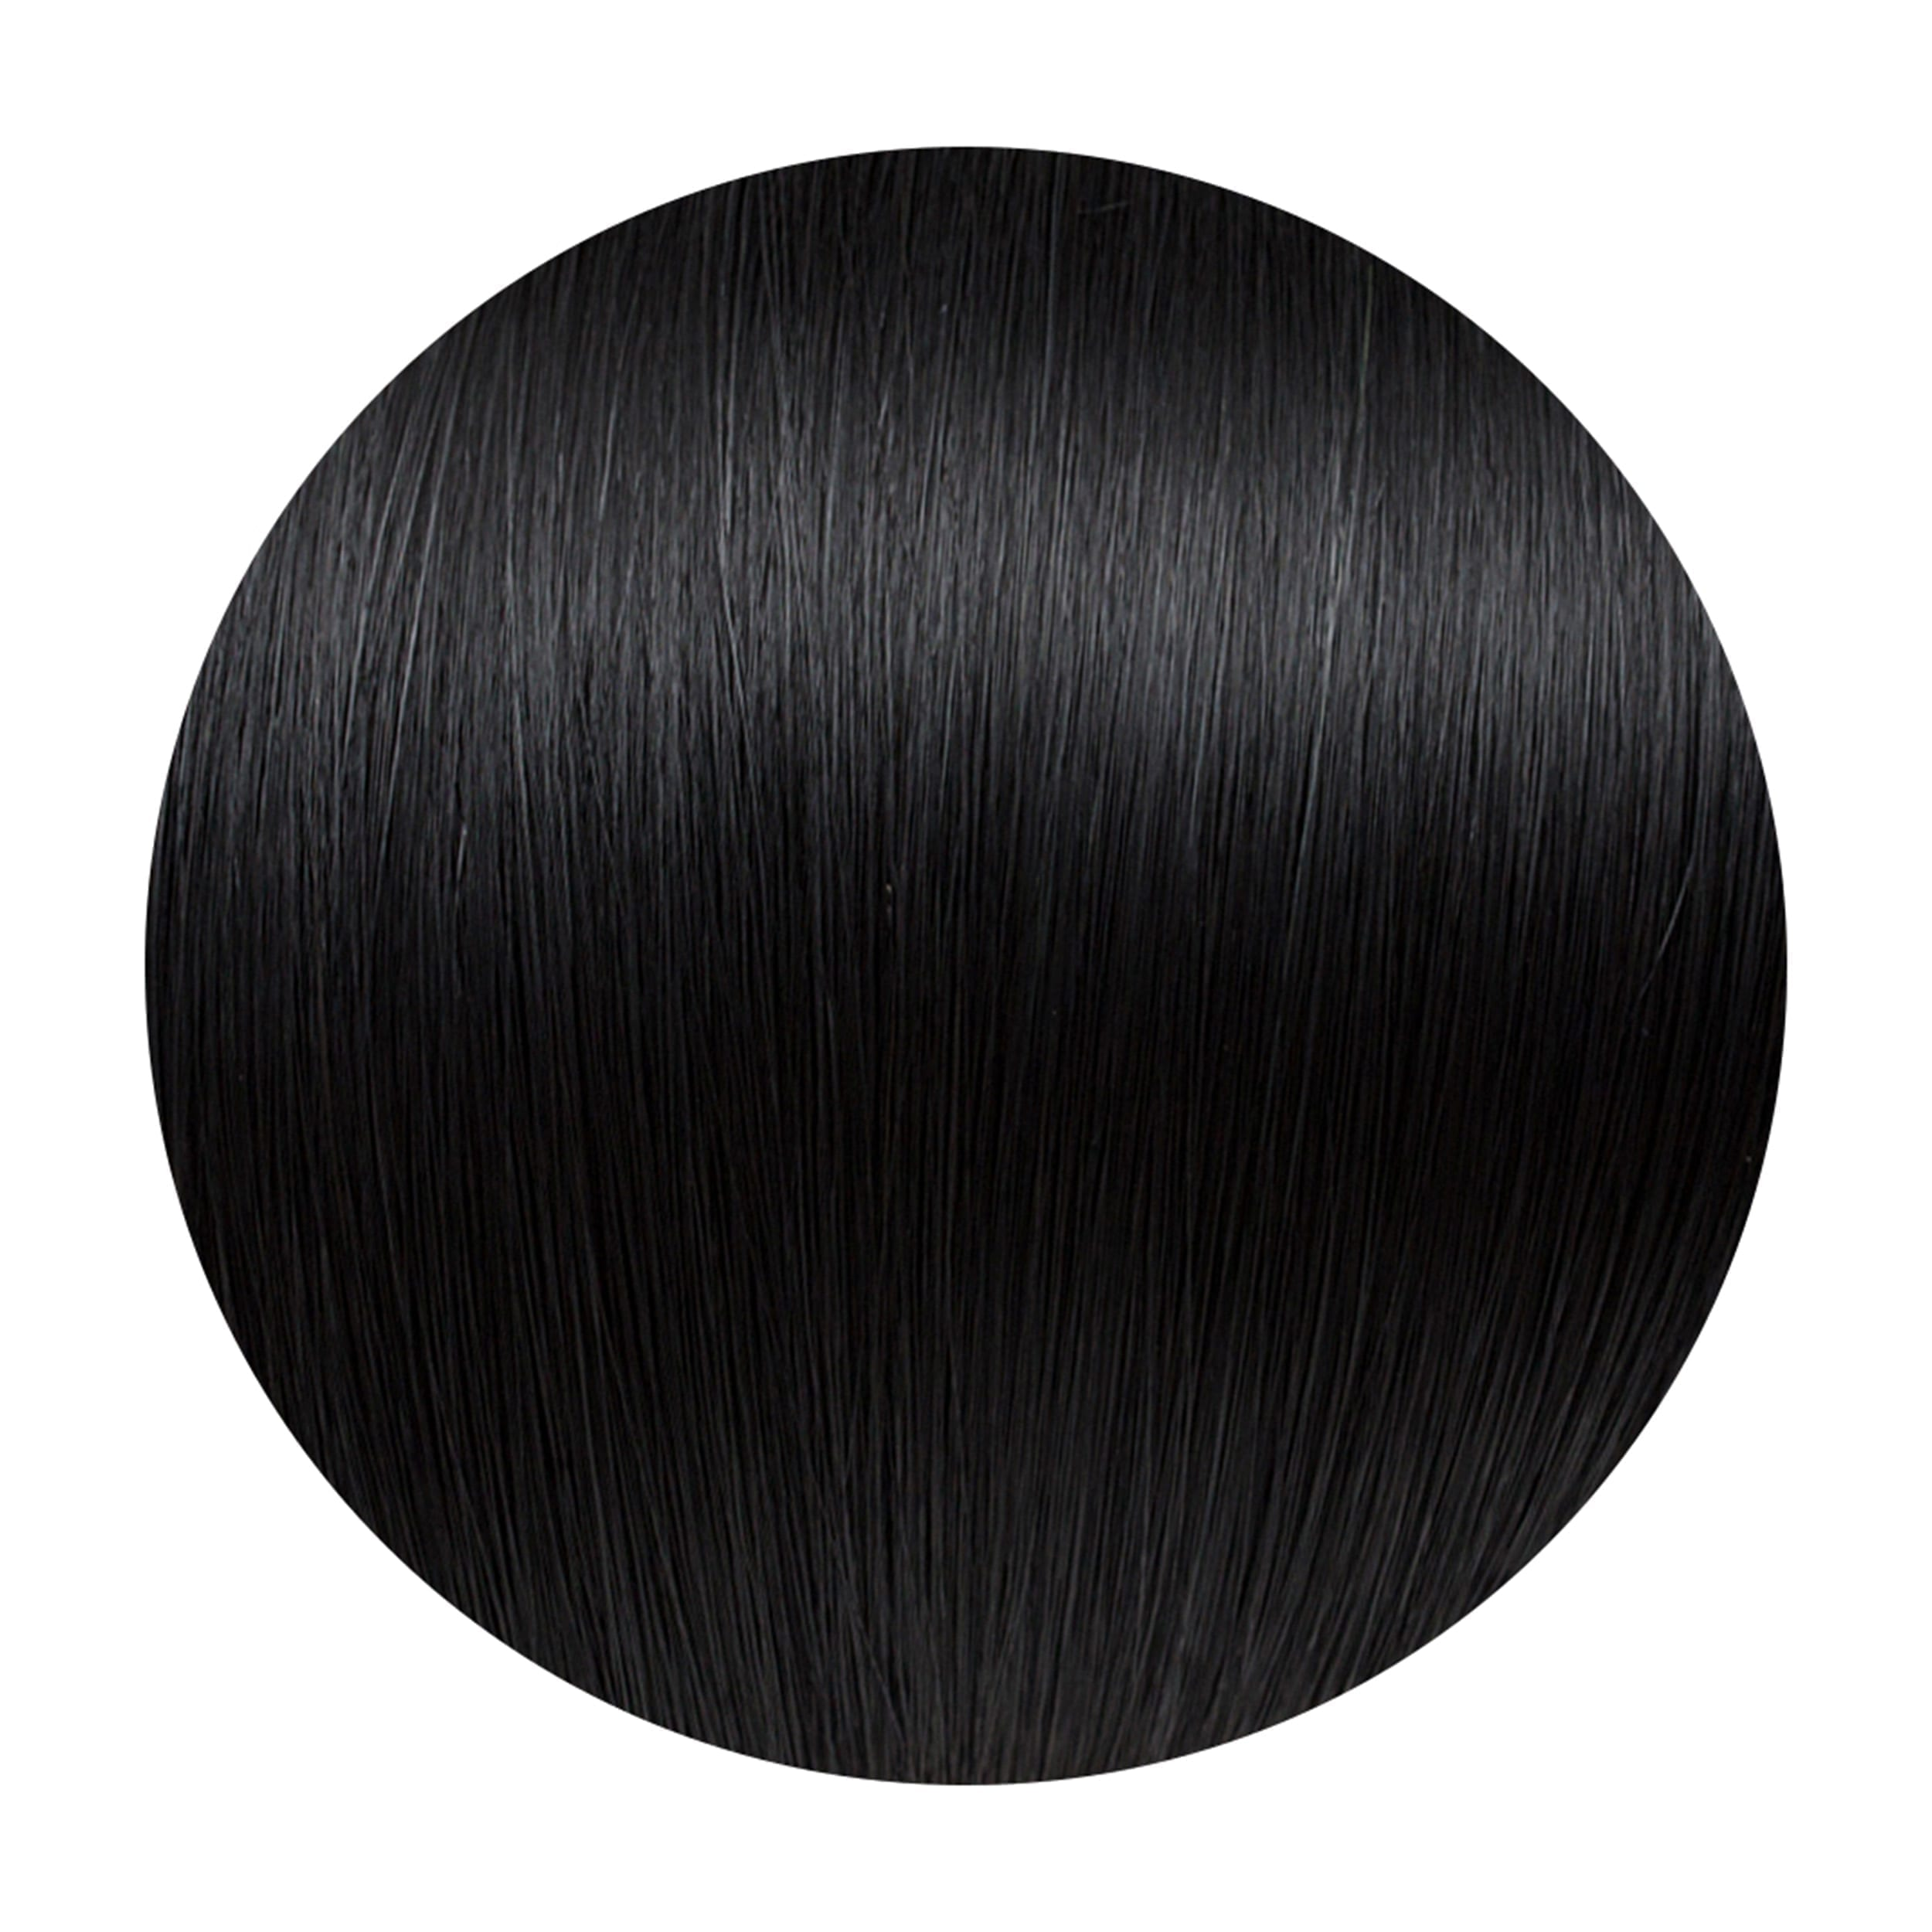 Midnight Human Hair Extensions Clip in 5 Piece